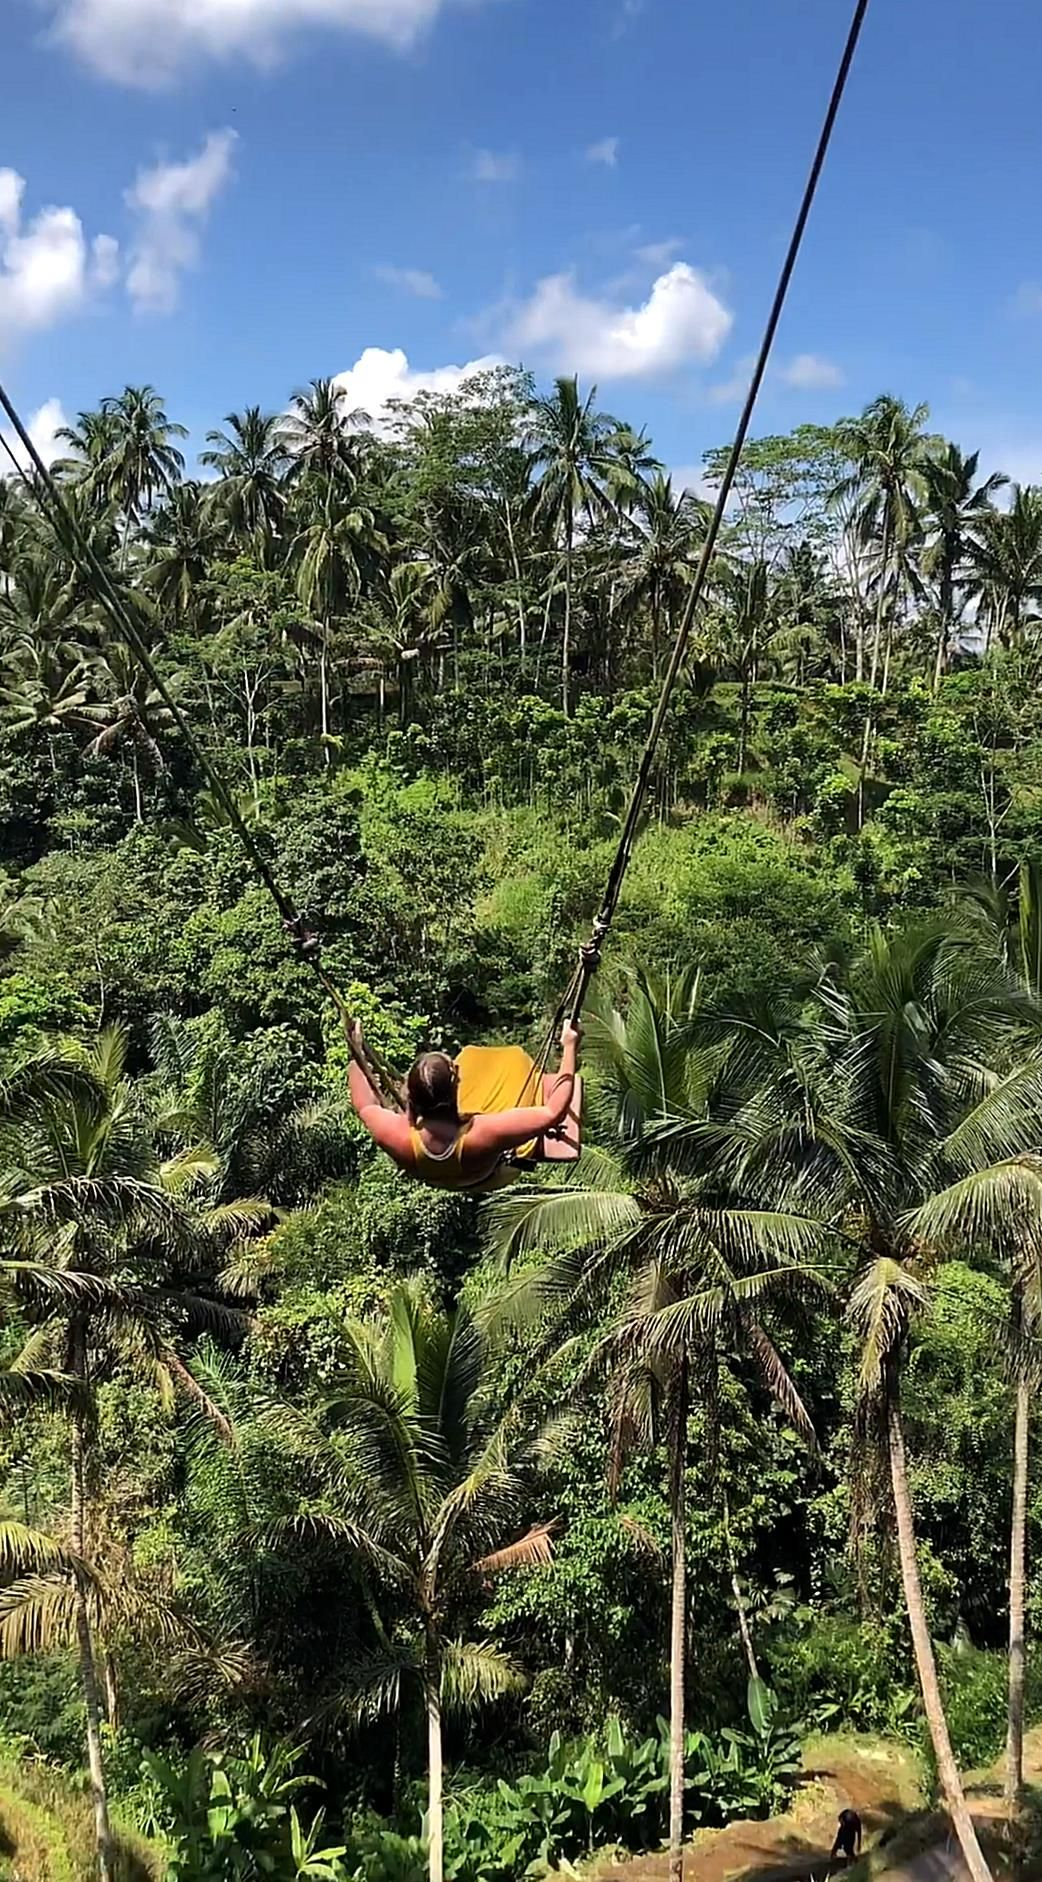 Need a guide to the Bali Swing in Indonesia Check out this